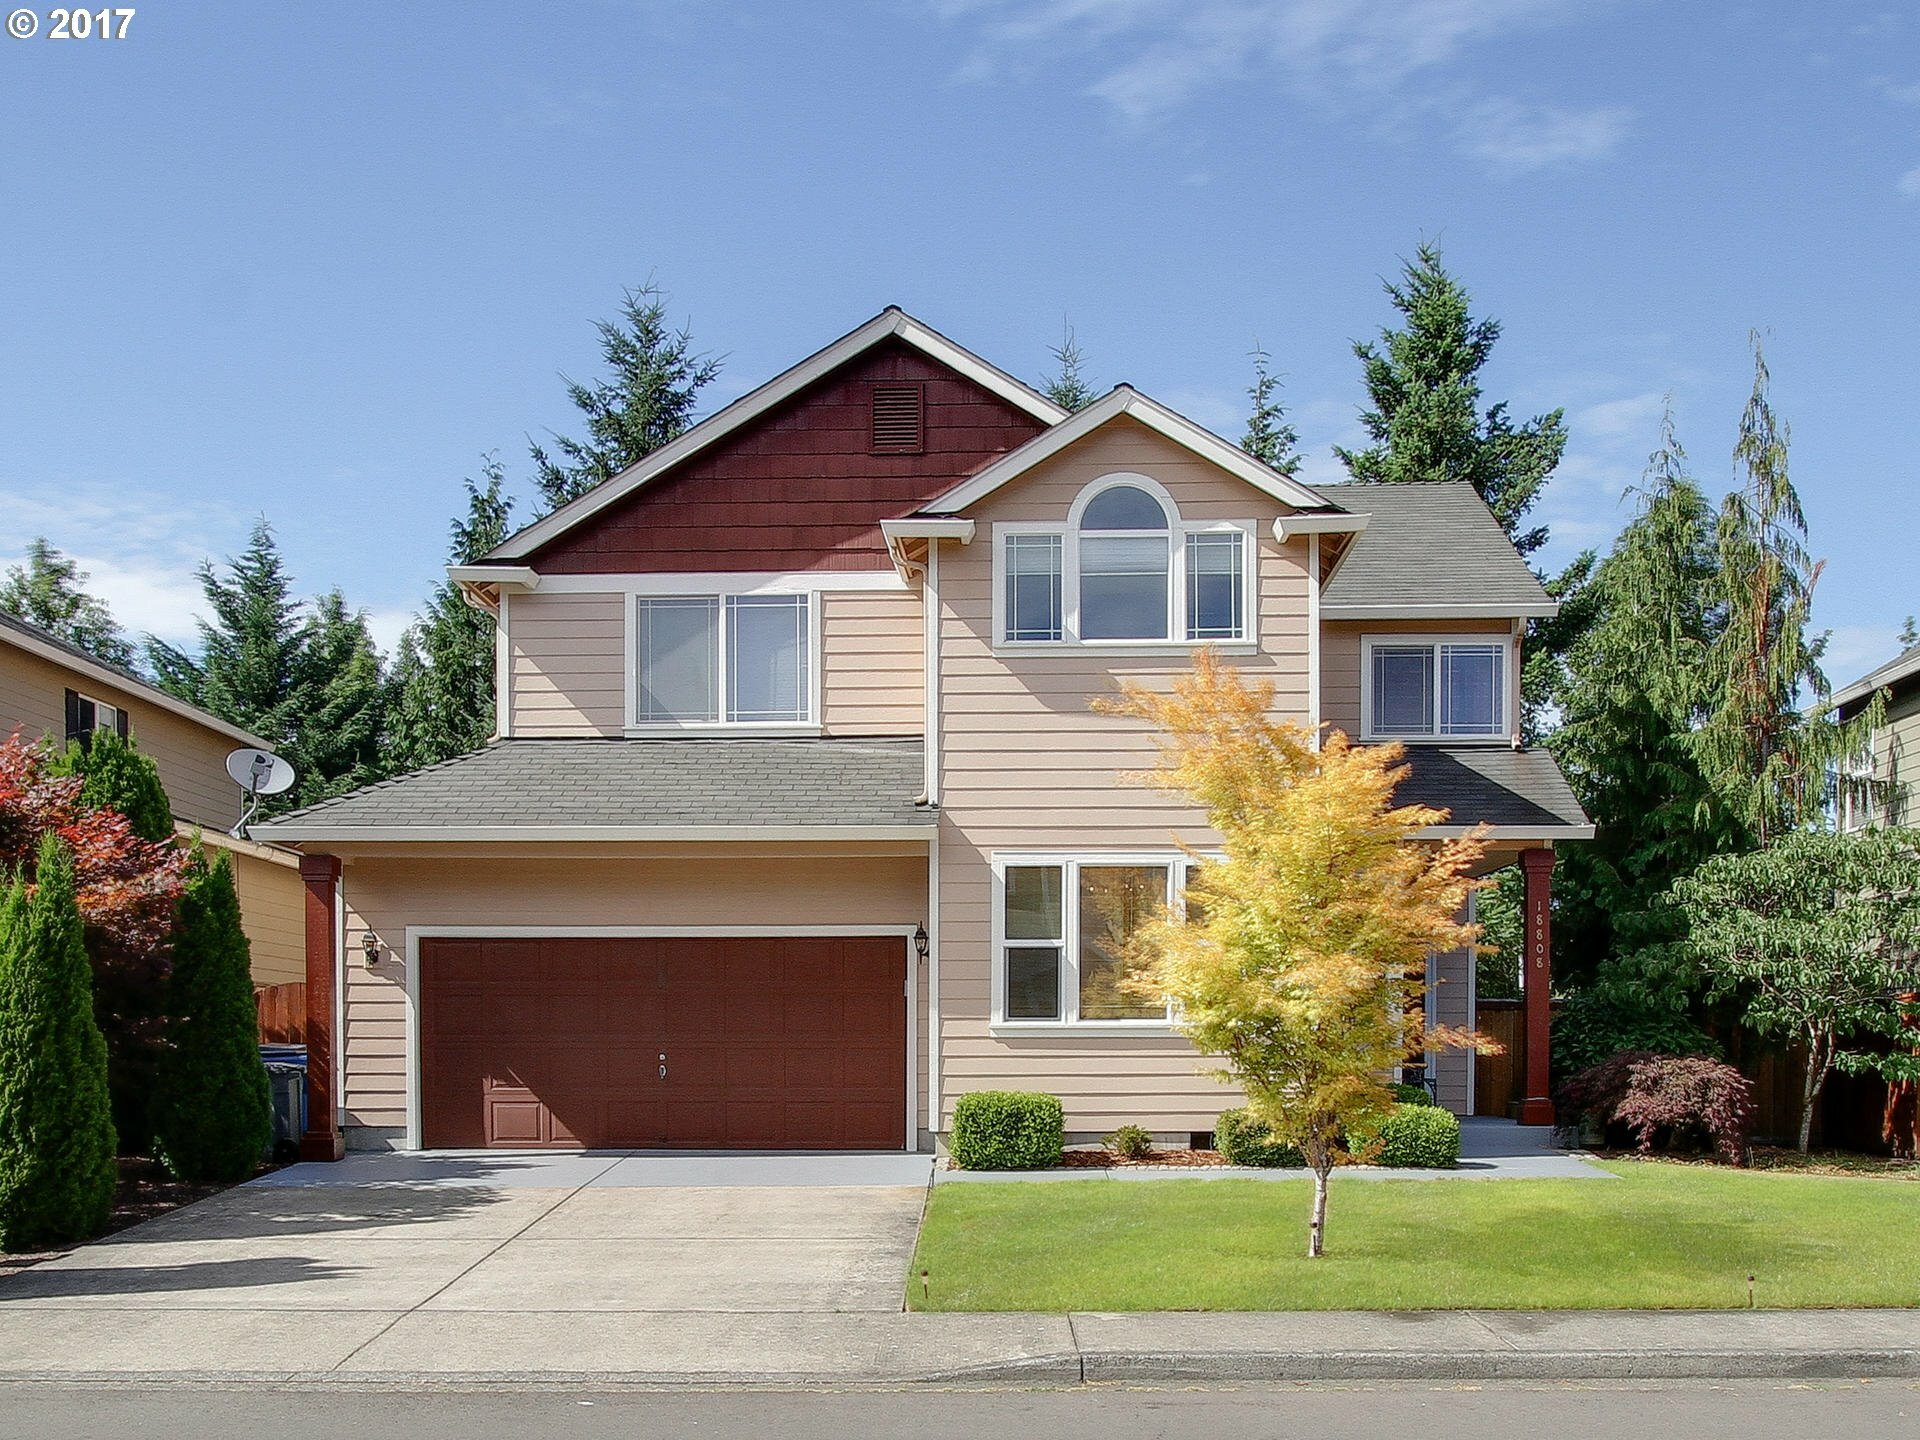 18808 Se 21st St, Vancouver, WA - USA (photo 1)